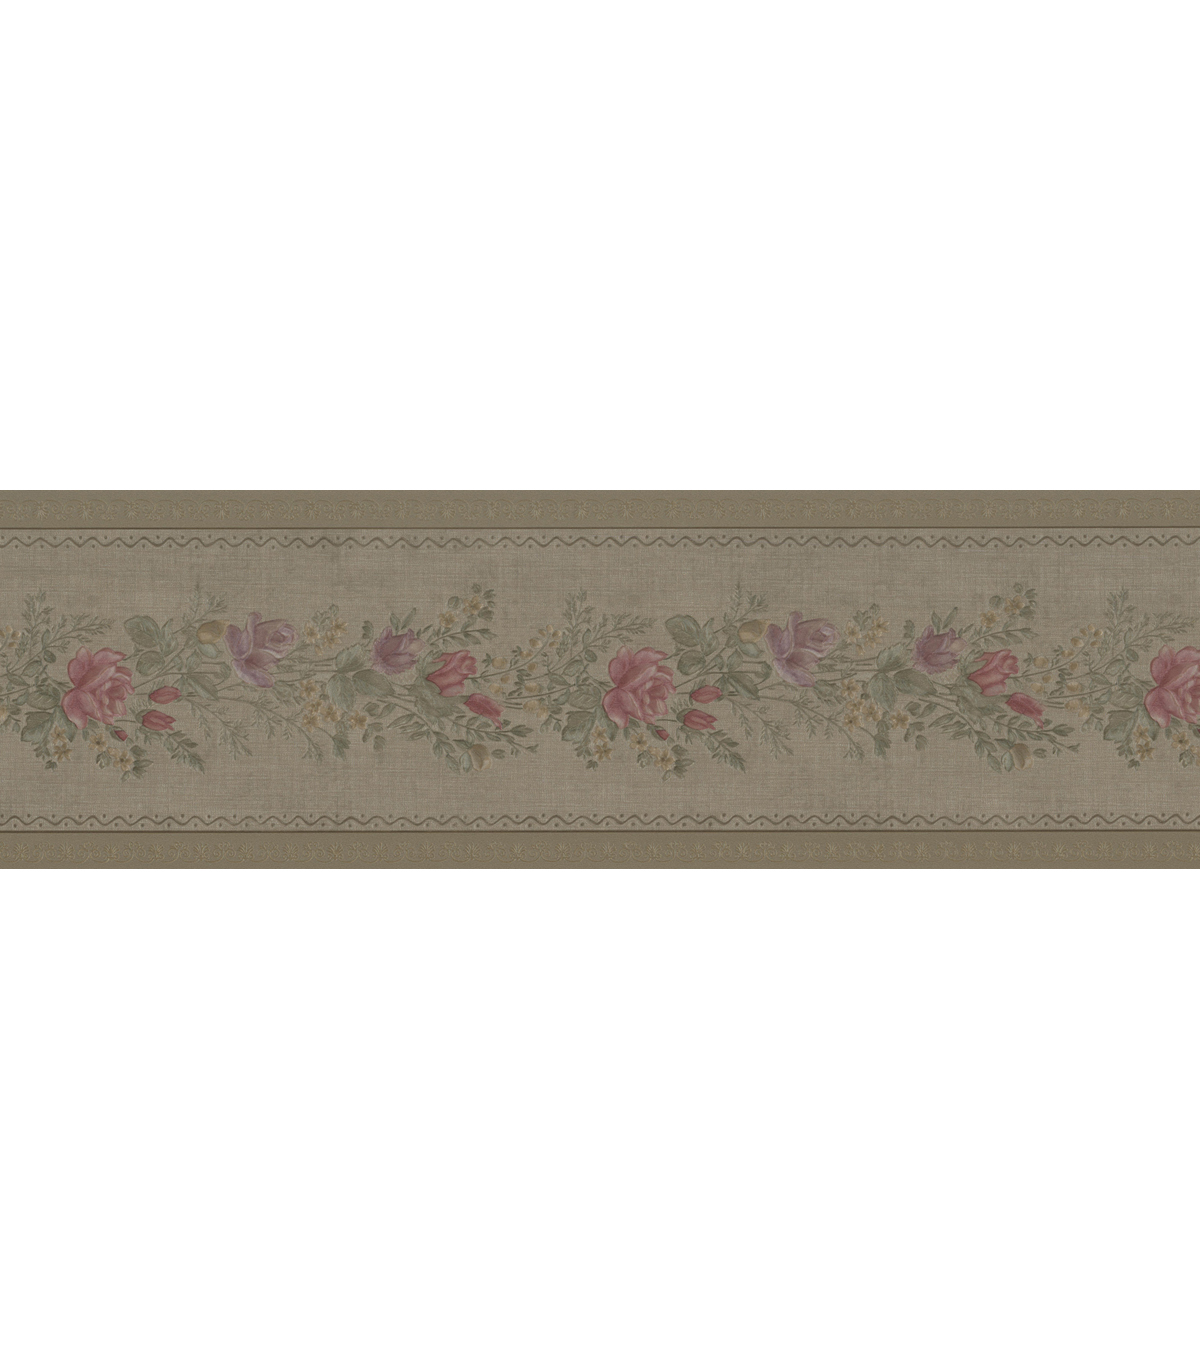 Alexa Olive Floral Meadow Wallpaper Border Sample